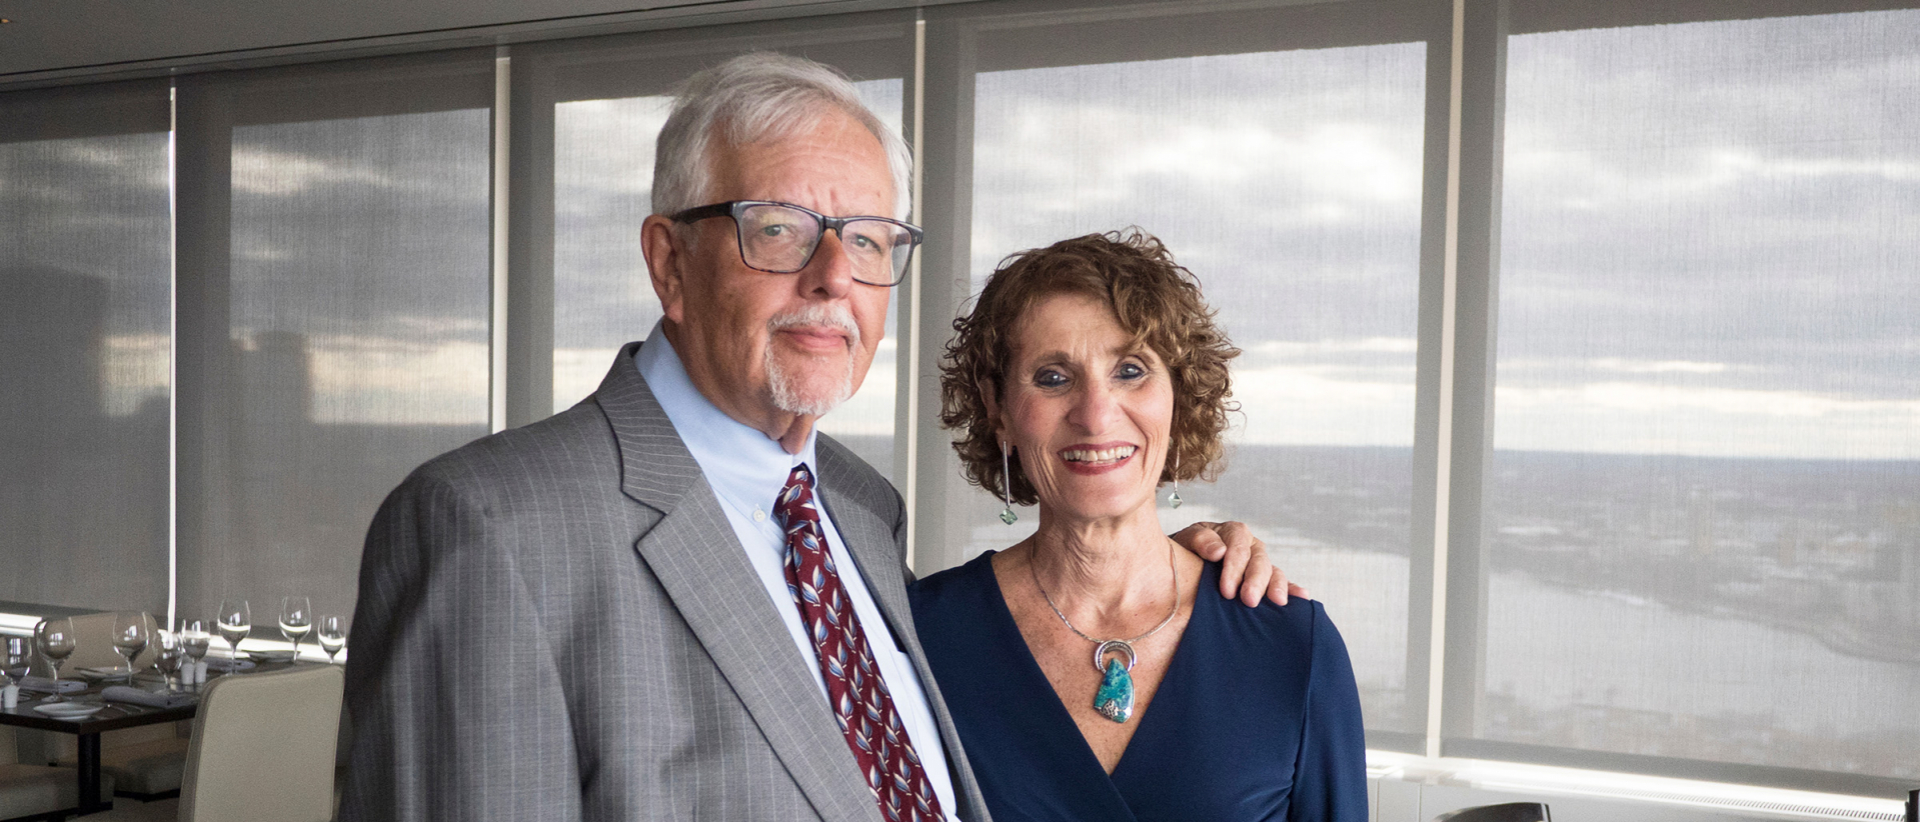 UMass Amherst College of Education alumna Rena Mirkin with husband